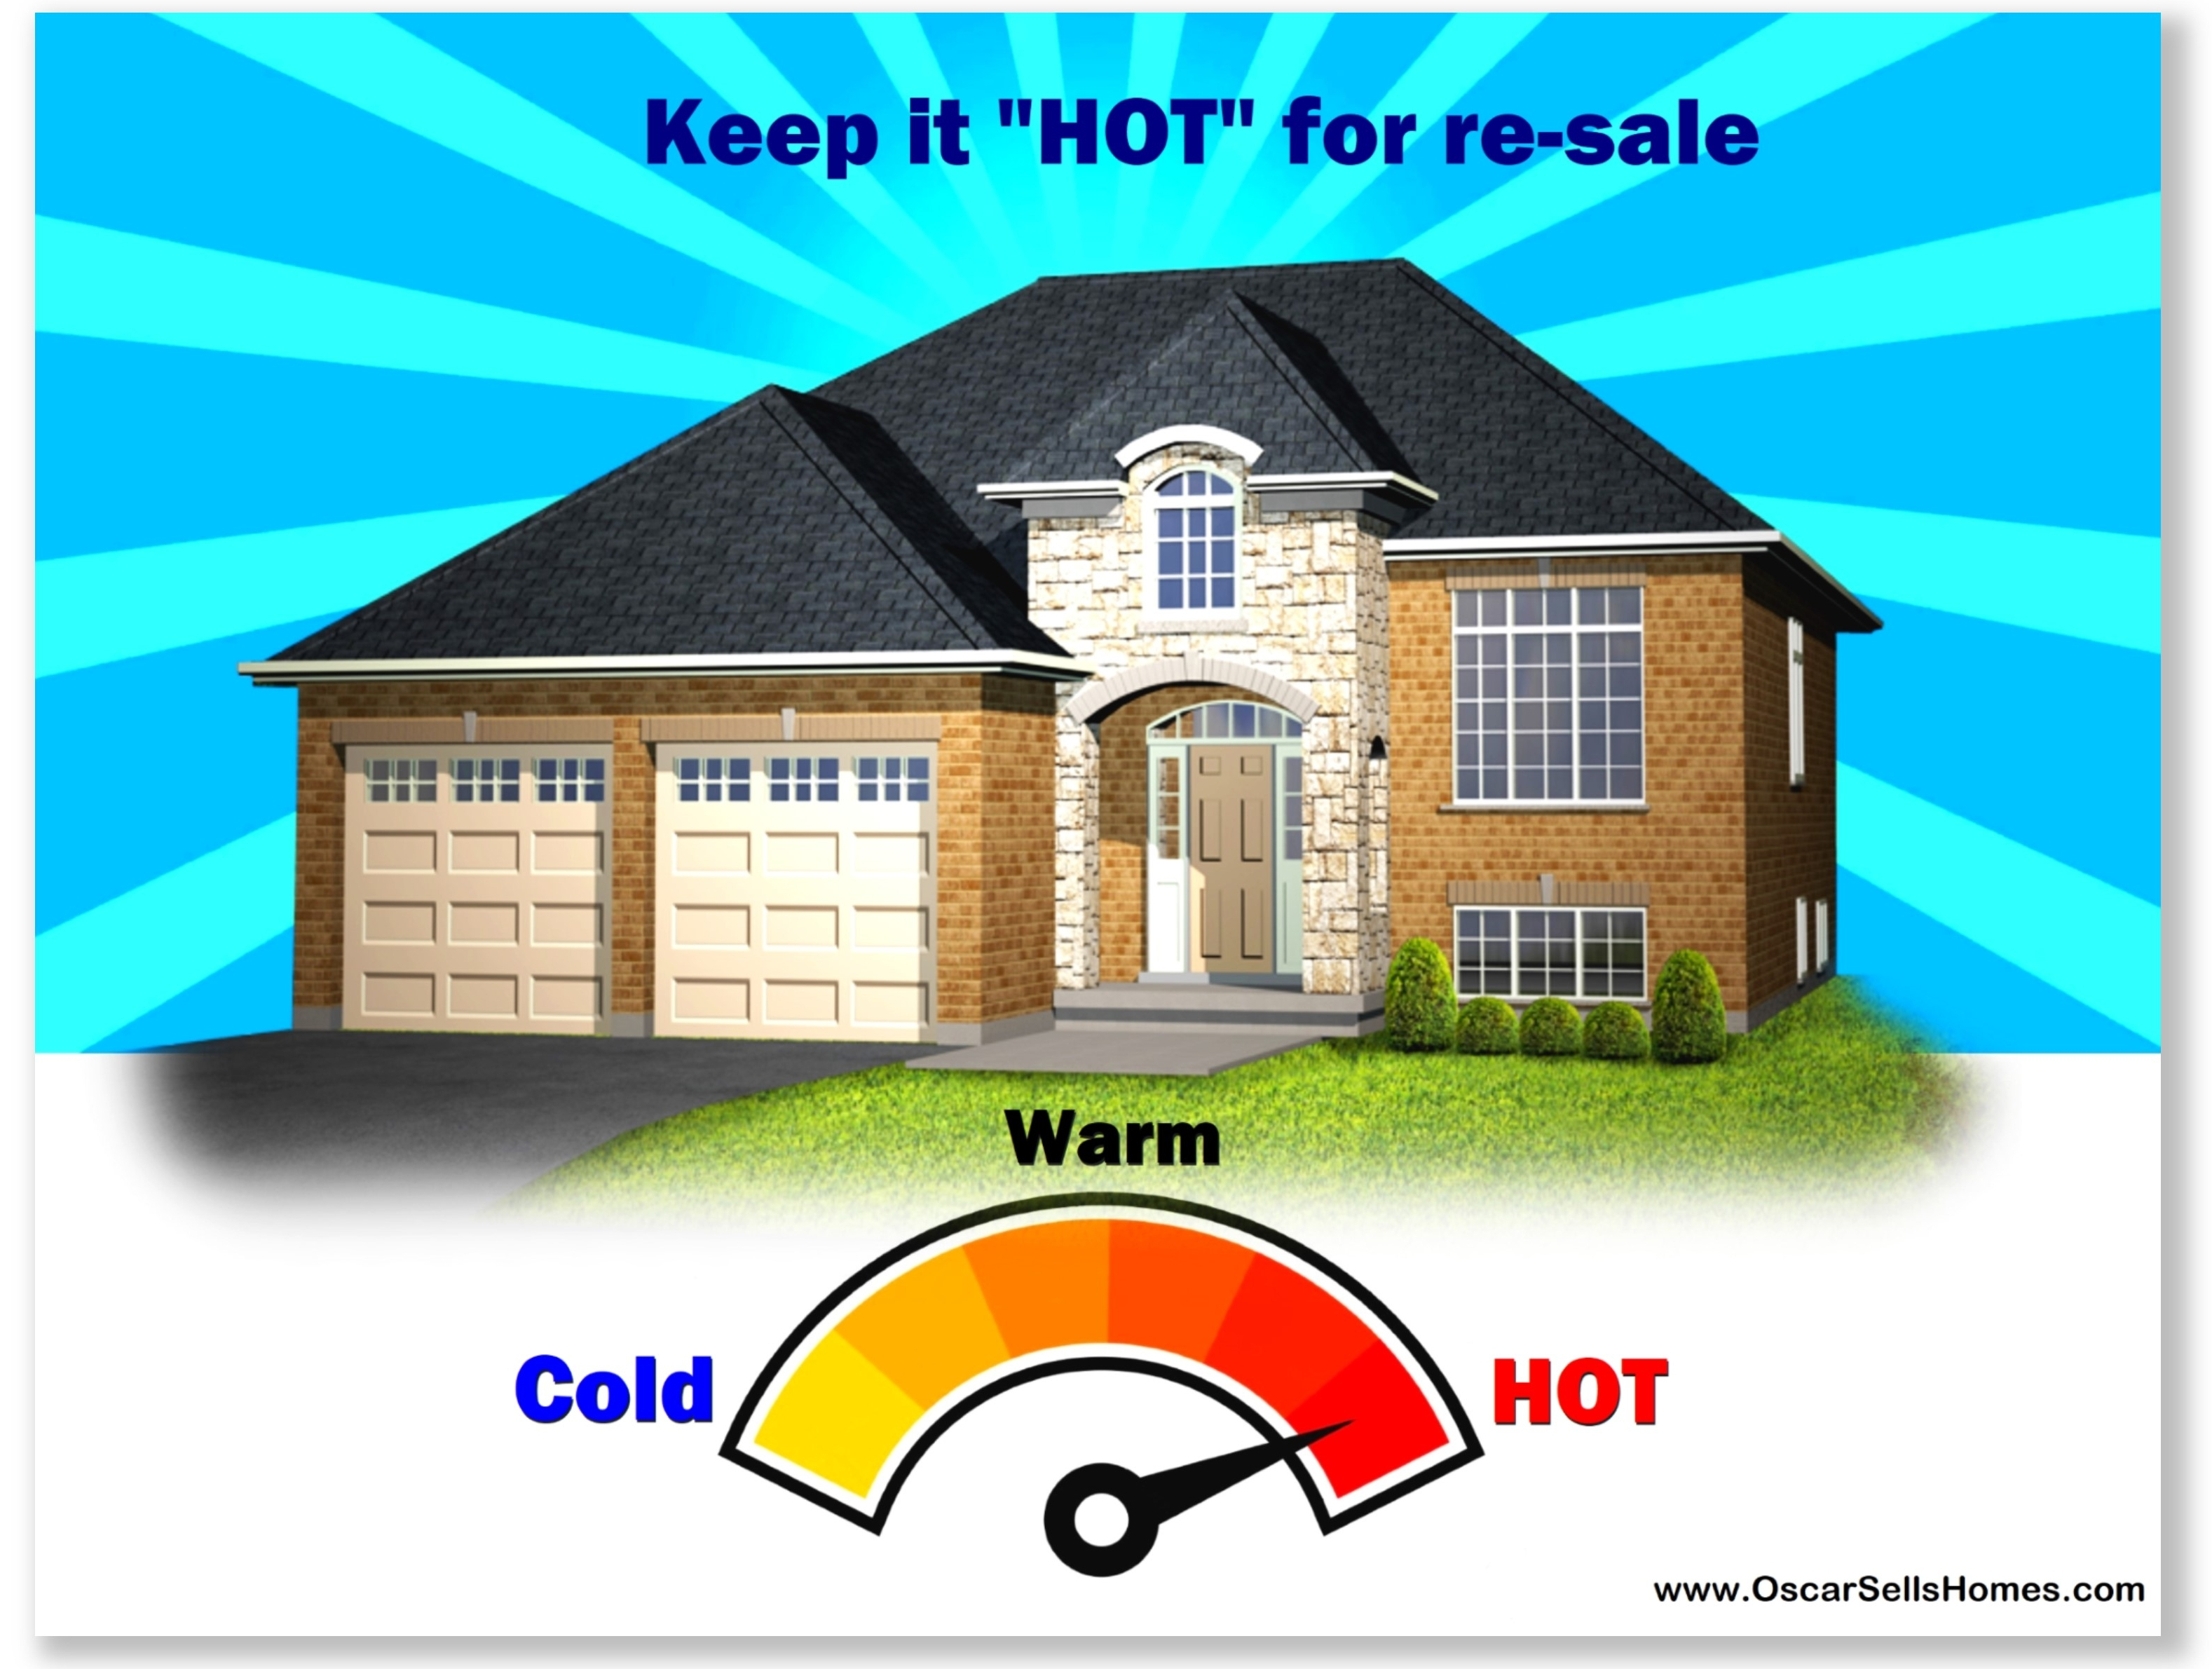 Keep your Home Hot for re-sale